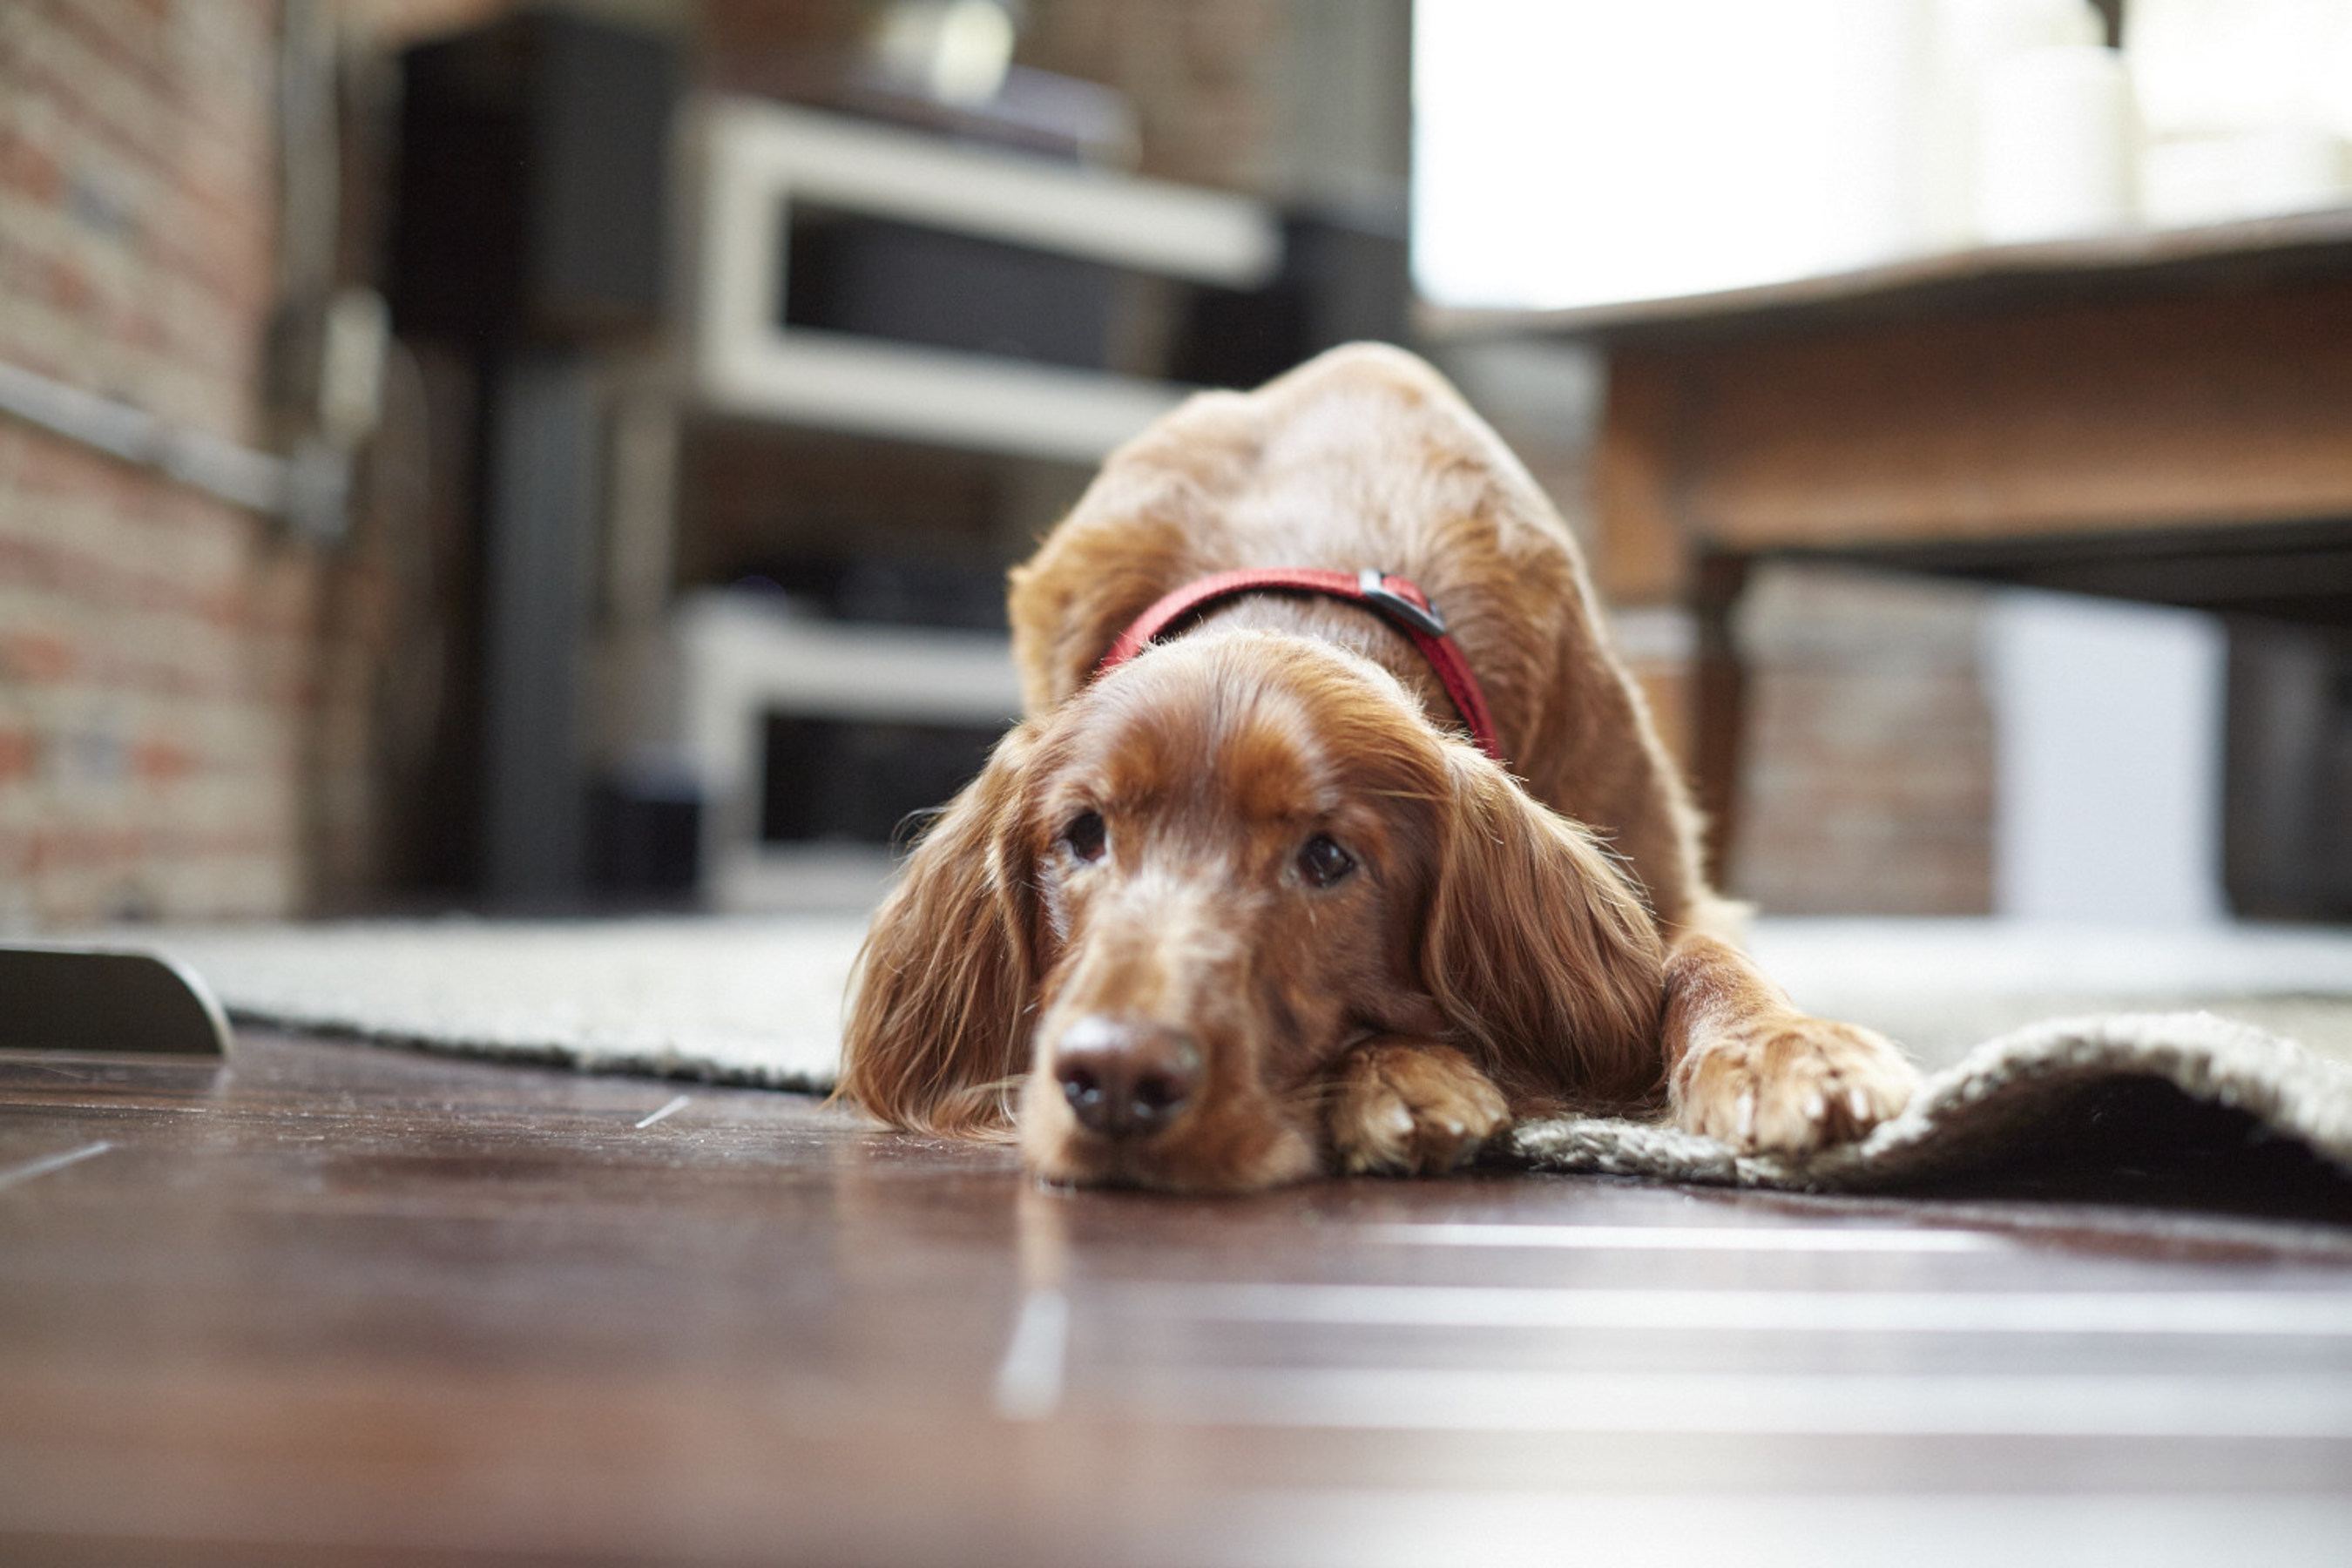 """Layla, above, waits for her adopted pet parent to come home in the Coldwell Banker """"Home's Best Friend"""" television commercial. Coldwell Banker has joined with Adopt-a-Pet.com to find homes for 20,000 dogs like Layla in 2015."""